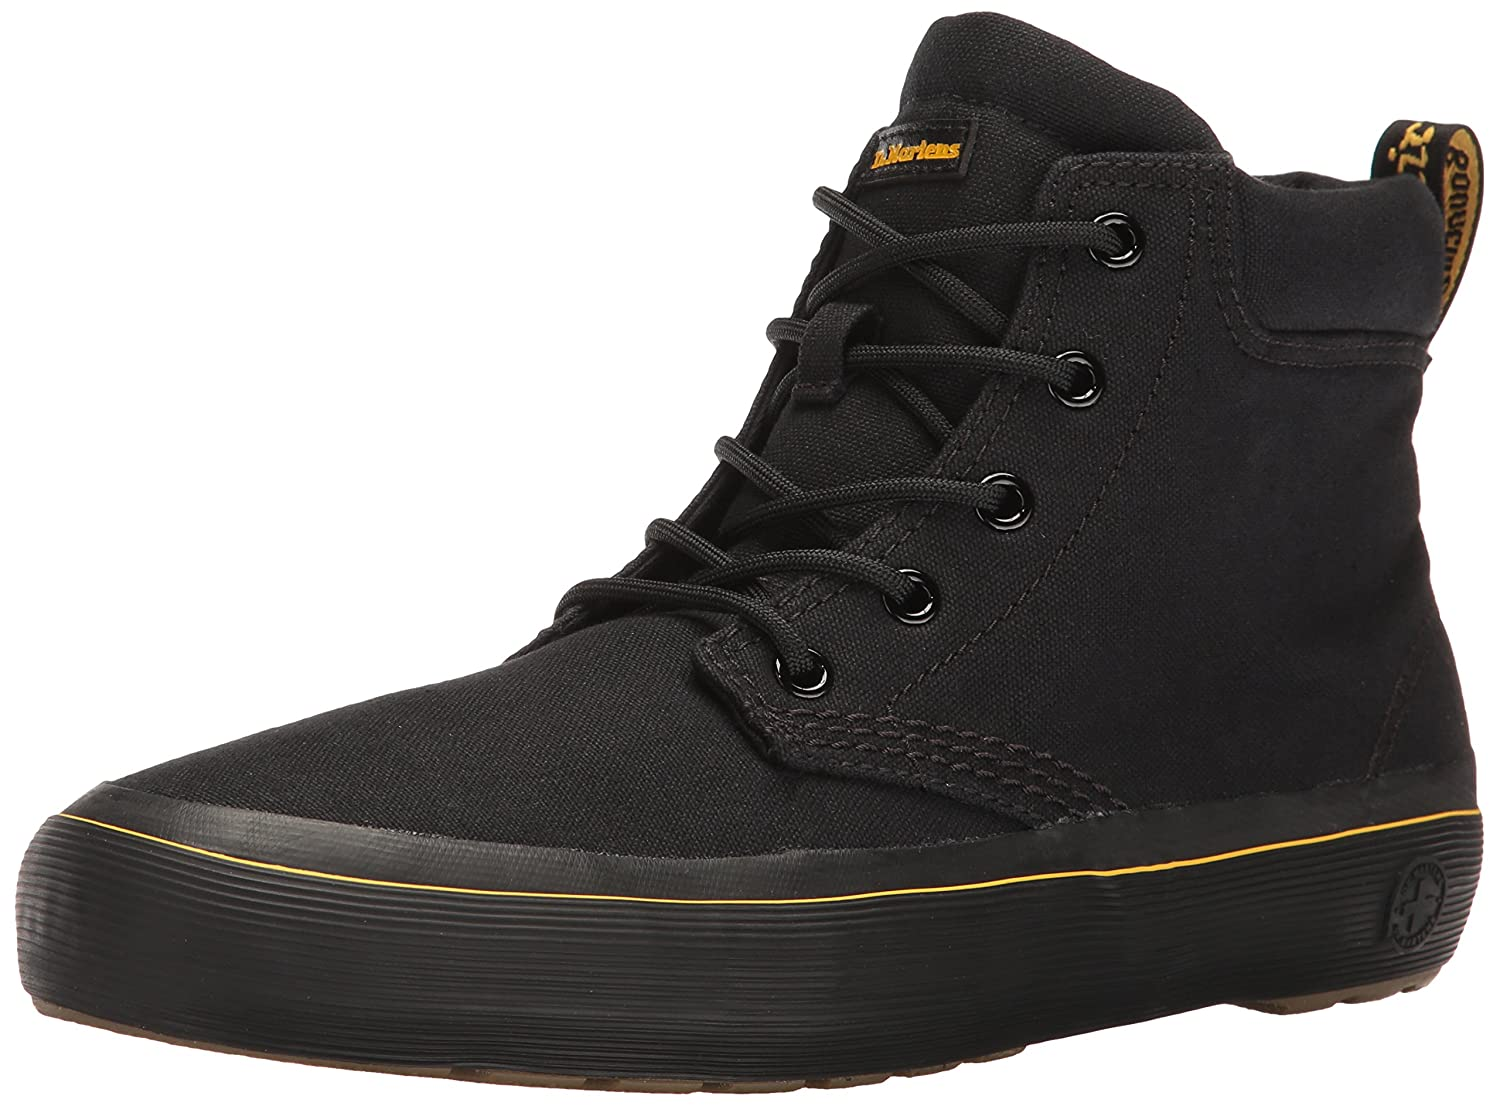 Dr. Martens Women's Allana Chukka Boot B01IE6ZBIC 8 UK/10 B US|Black